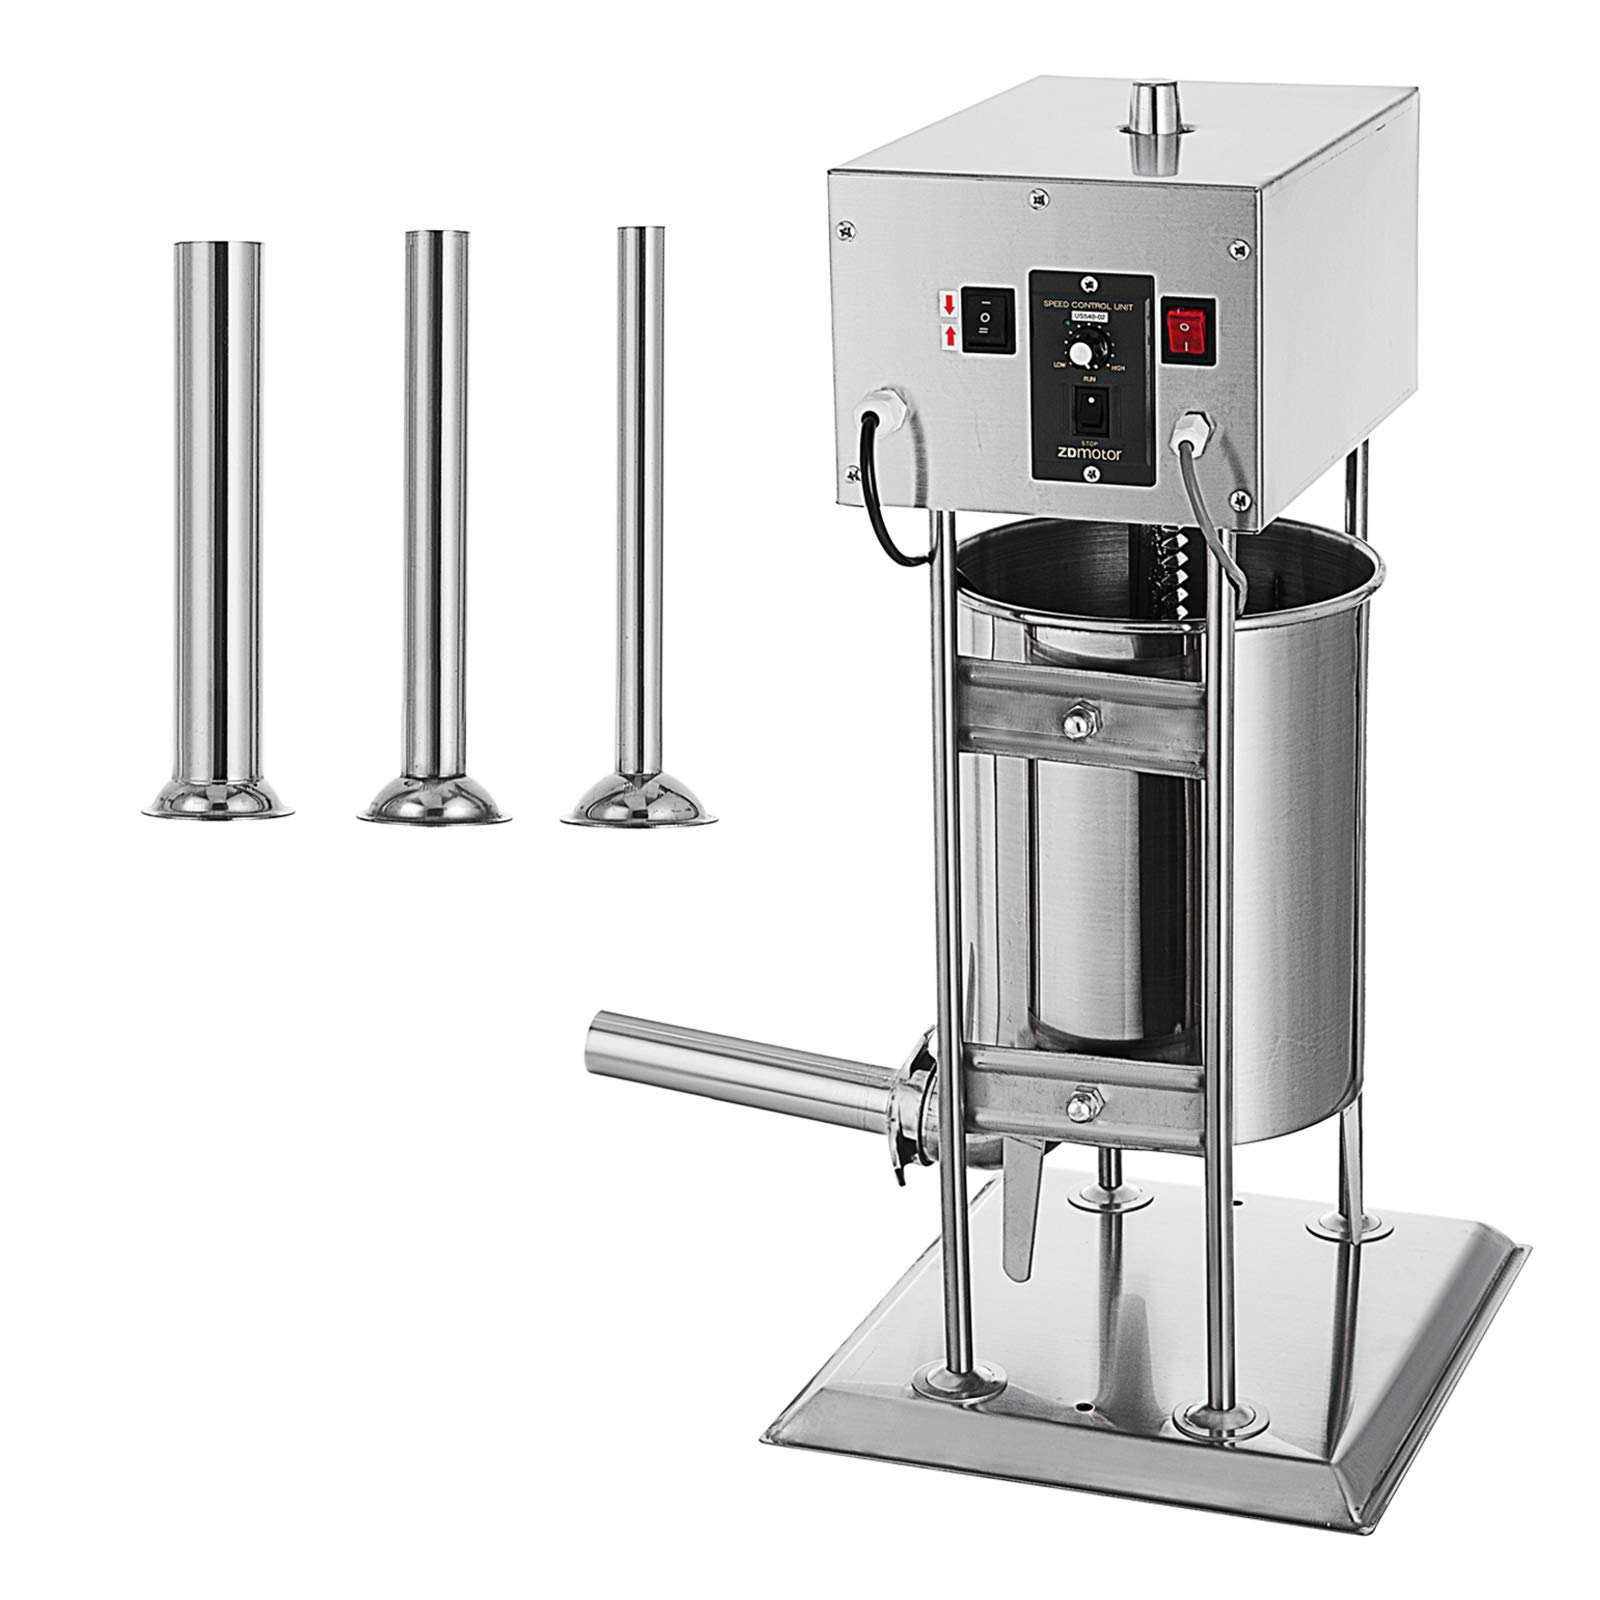 Happybuy Electric Sausage Filler 15L 33LB Vertical Meat Mince Maker Commercial Grade with 4 Filling Funnels Silver by Happybuy